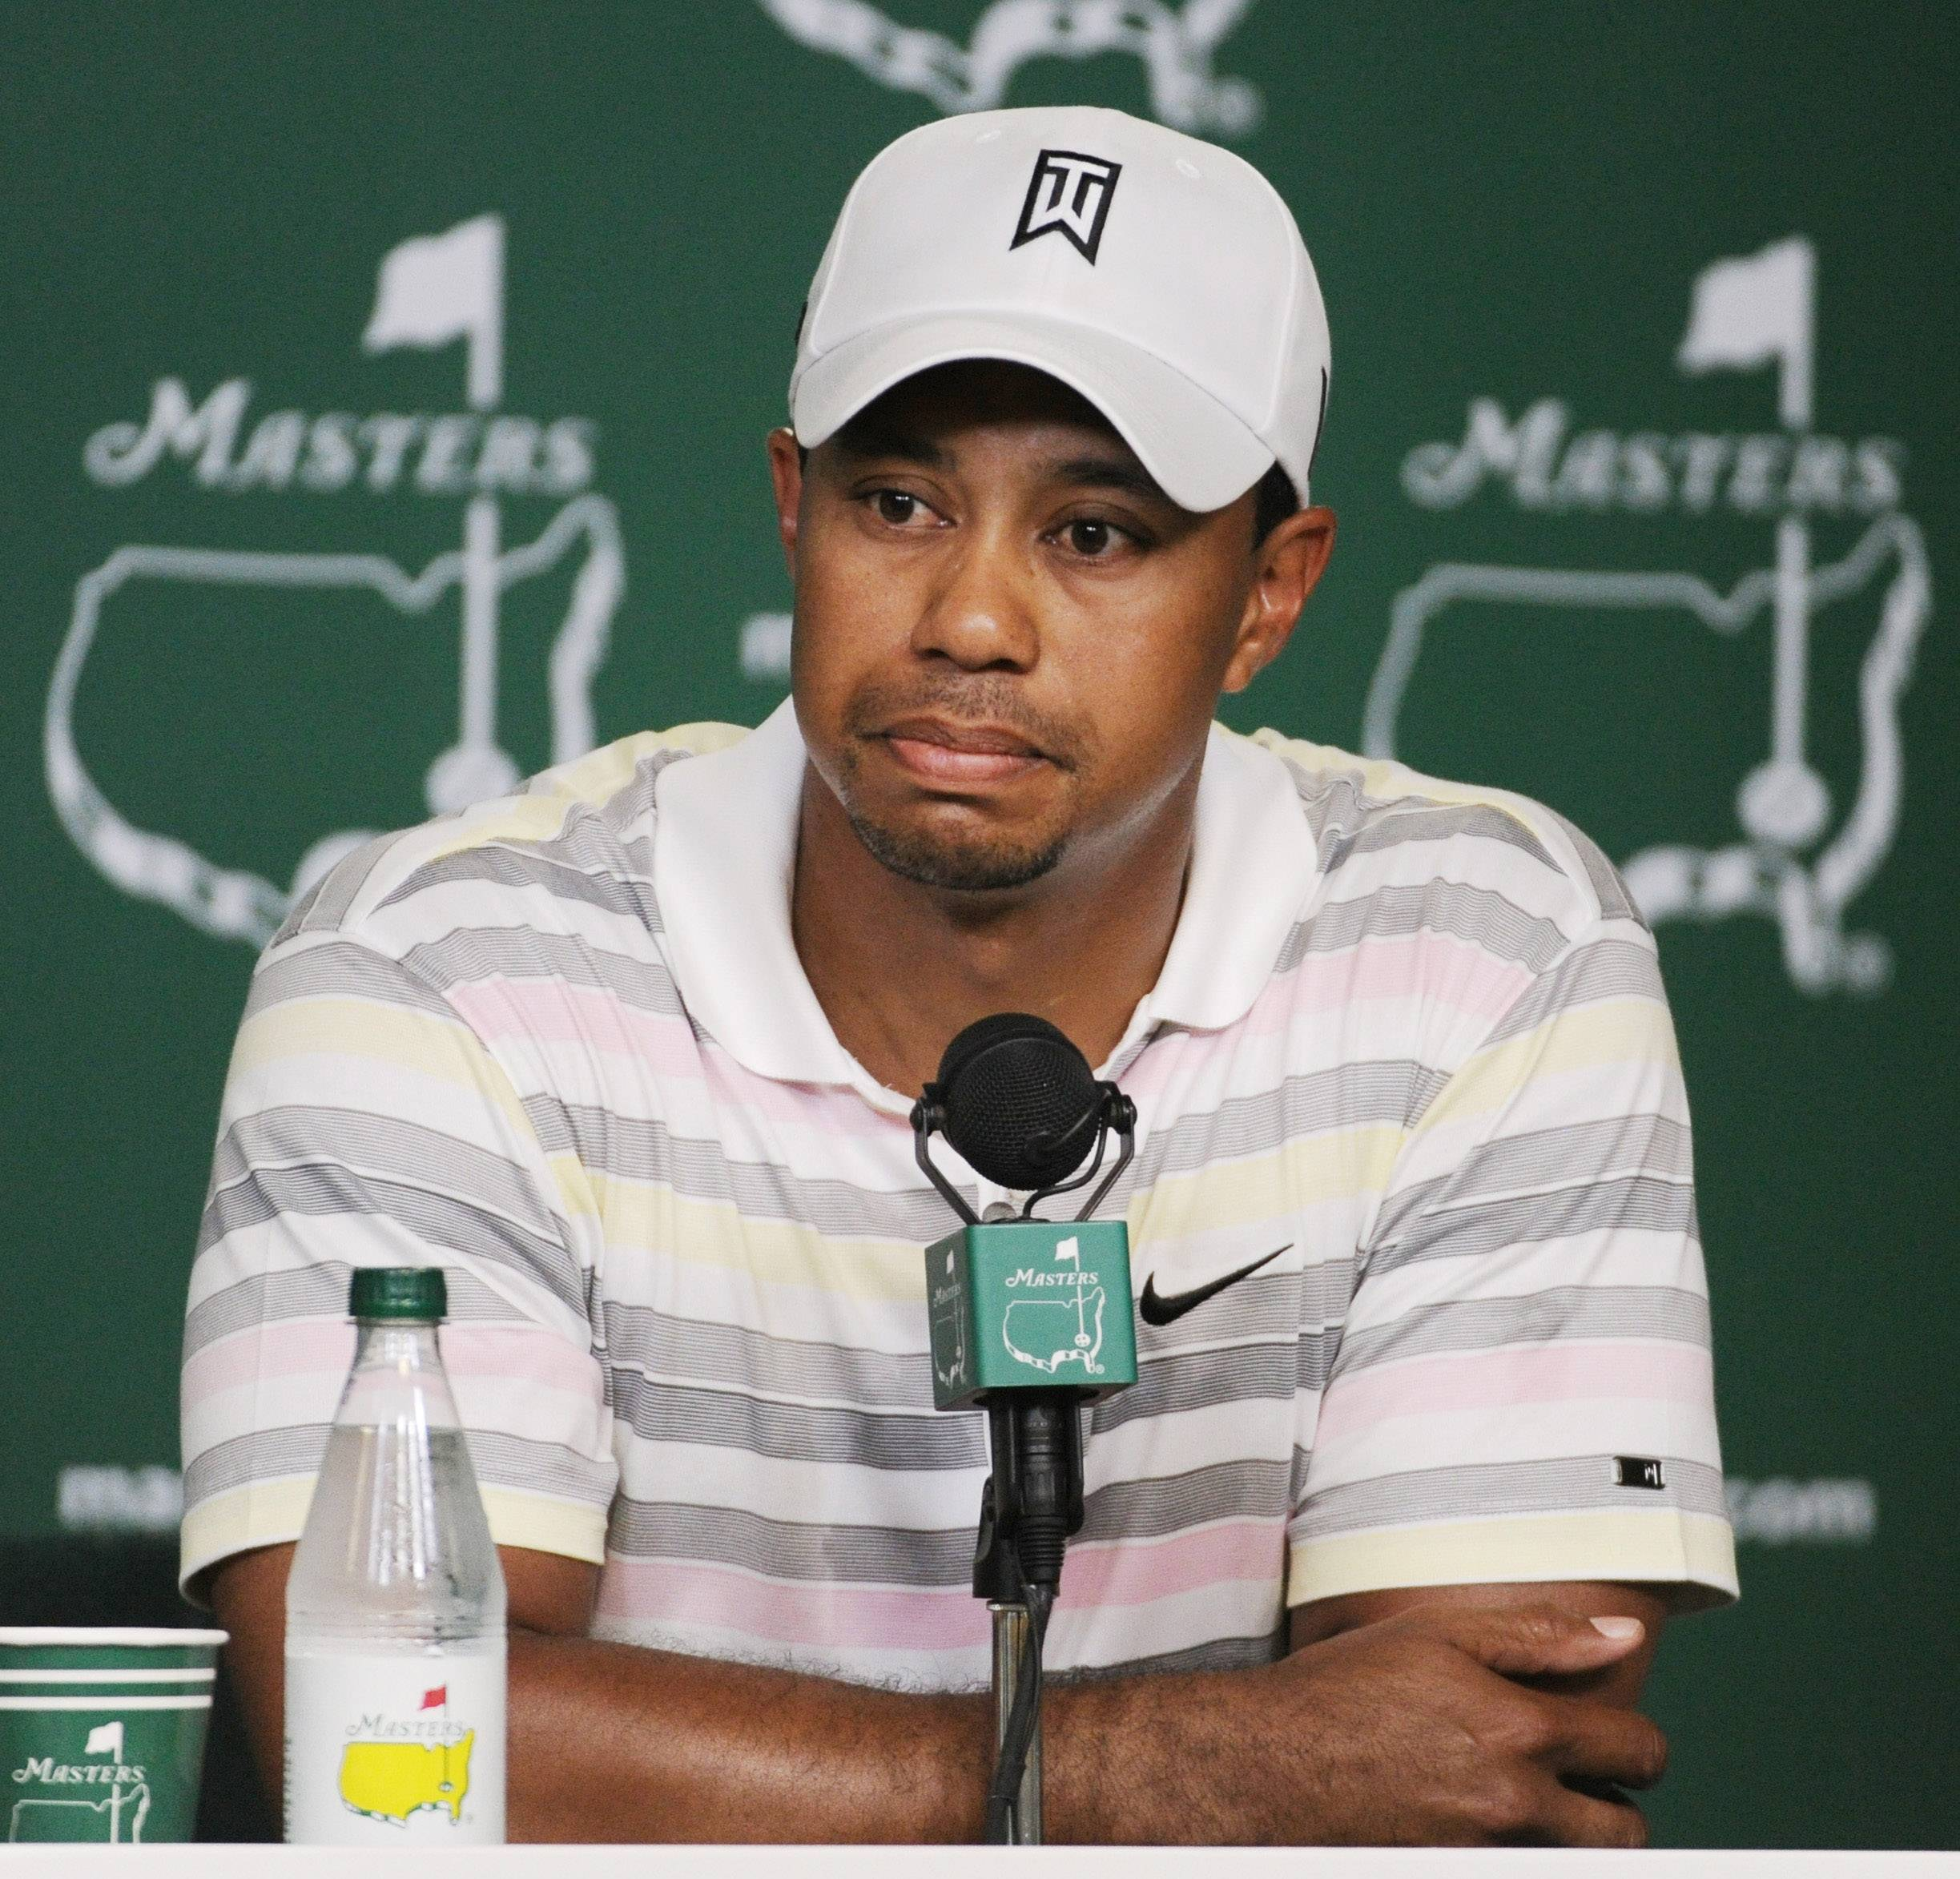 Tiger Woods listens to a question during his news conference at the 2010 Masters golf tournament in Augusta, Ga. Woods will miss the Masters for the first time in his career after having surgery on his back.